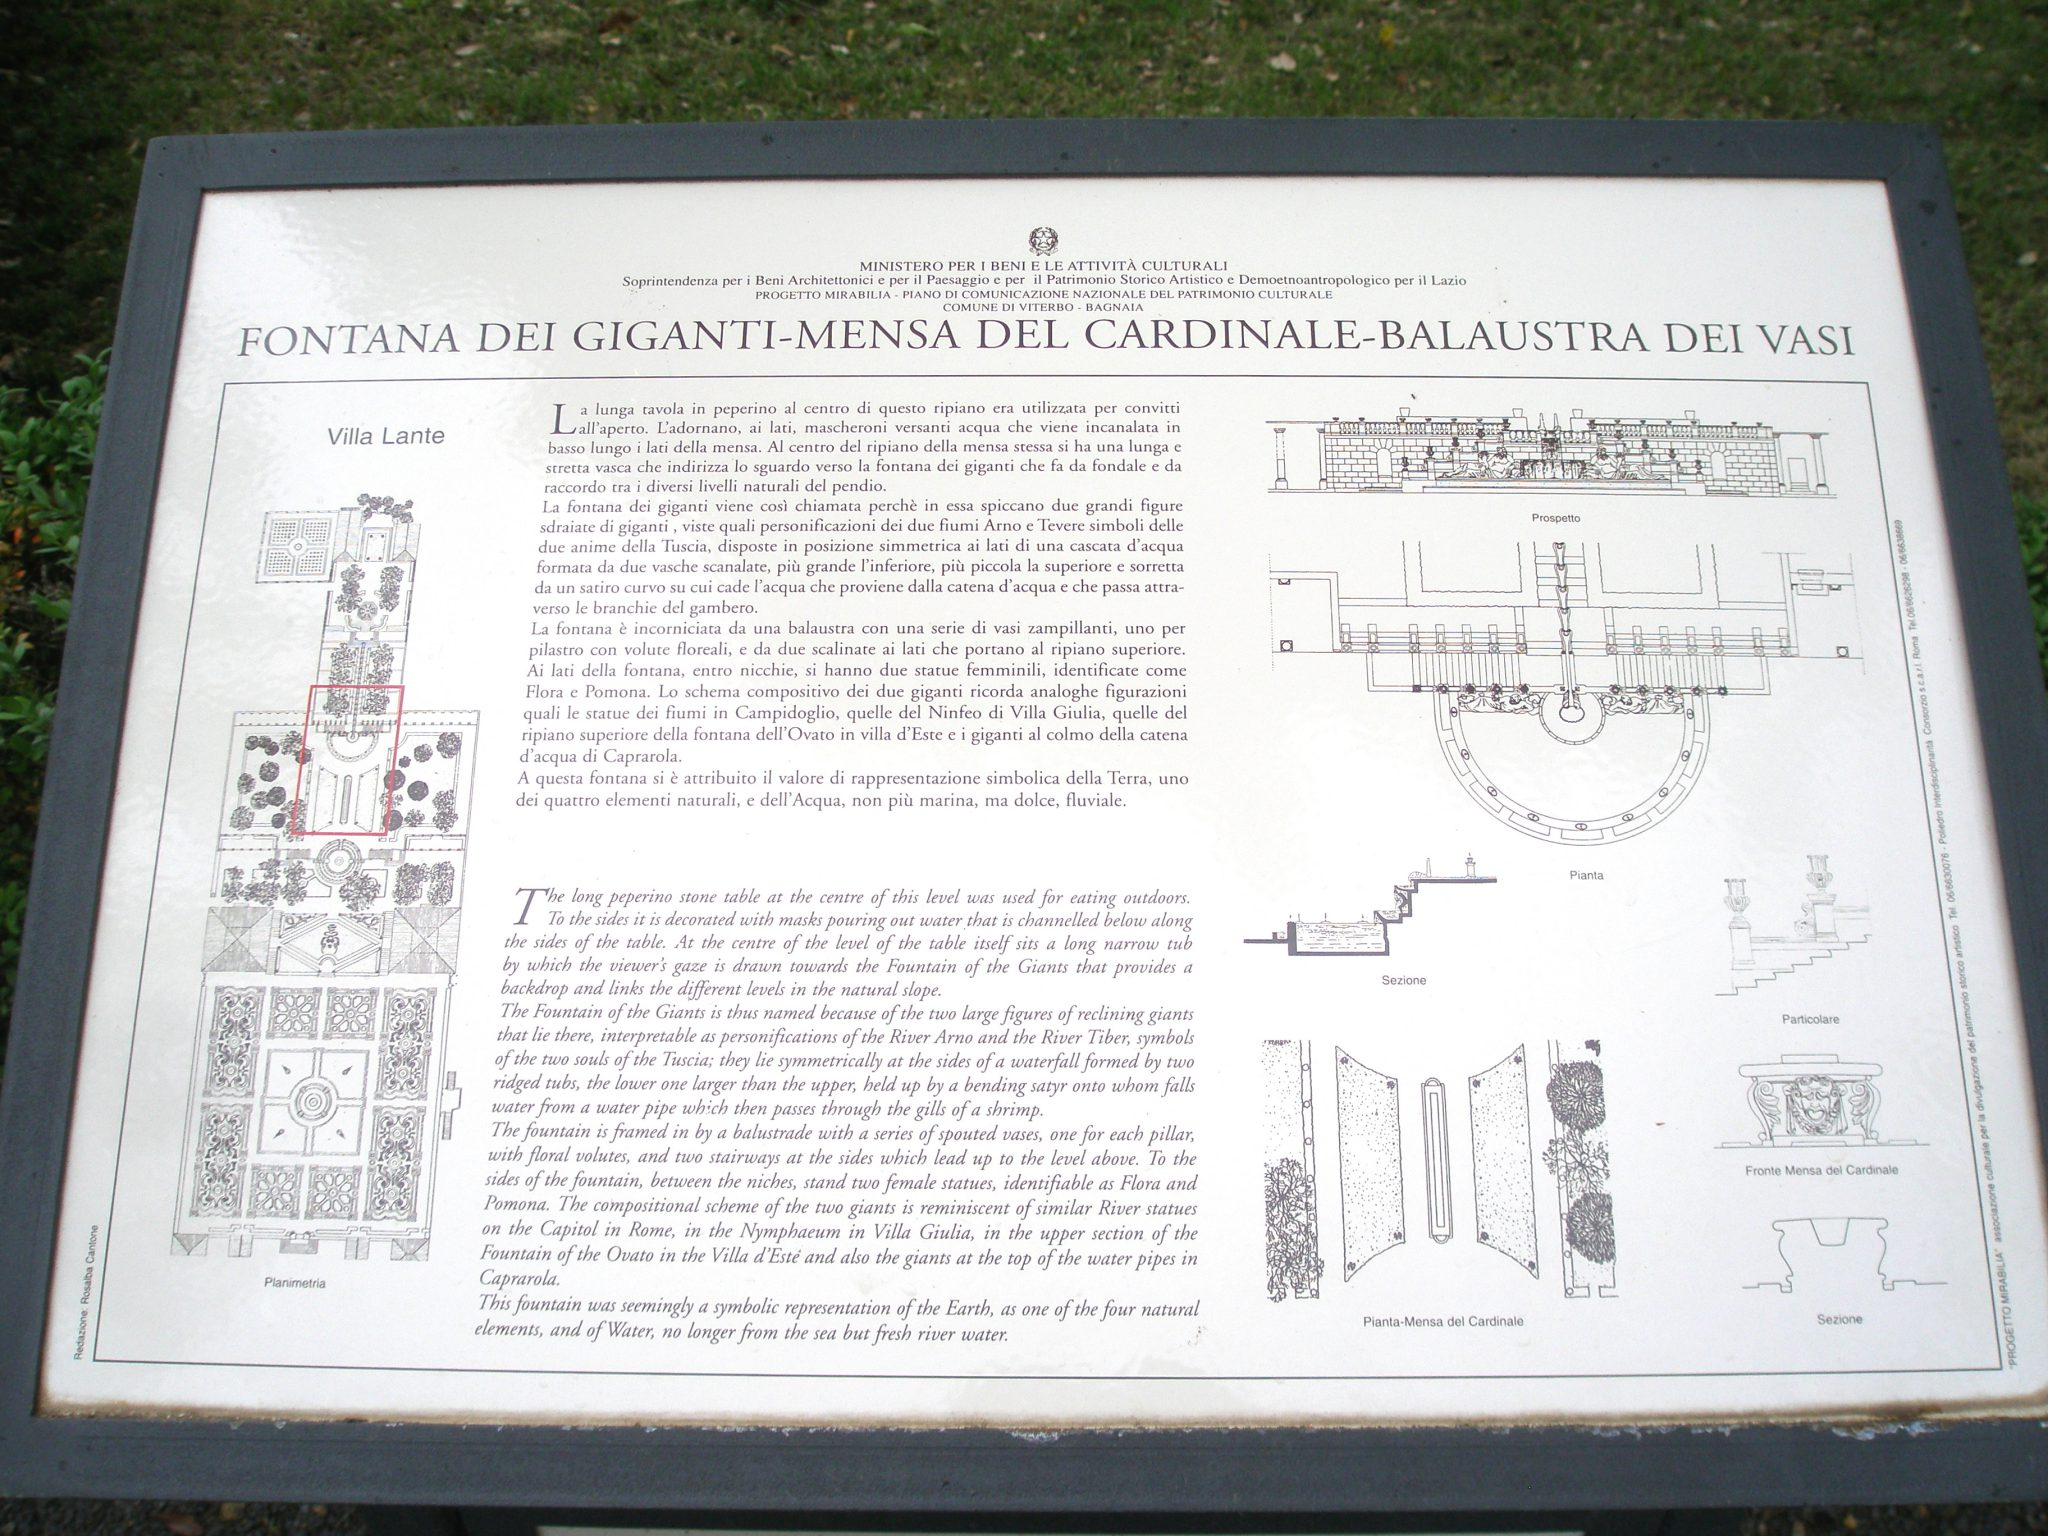 Diagram of The Fountain of the Giants AND of The Cardinal's Table